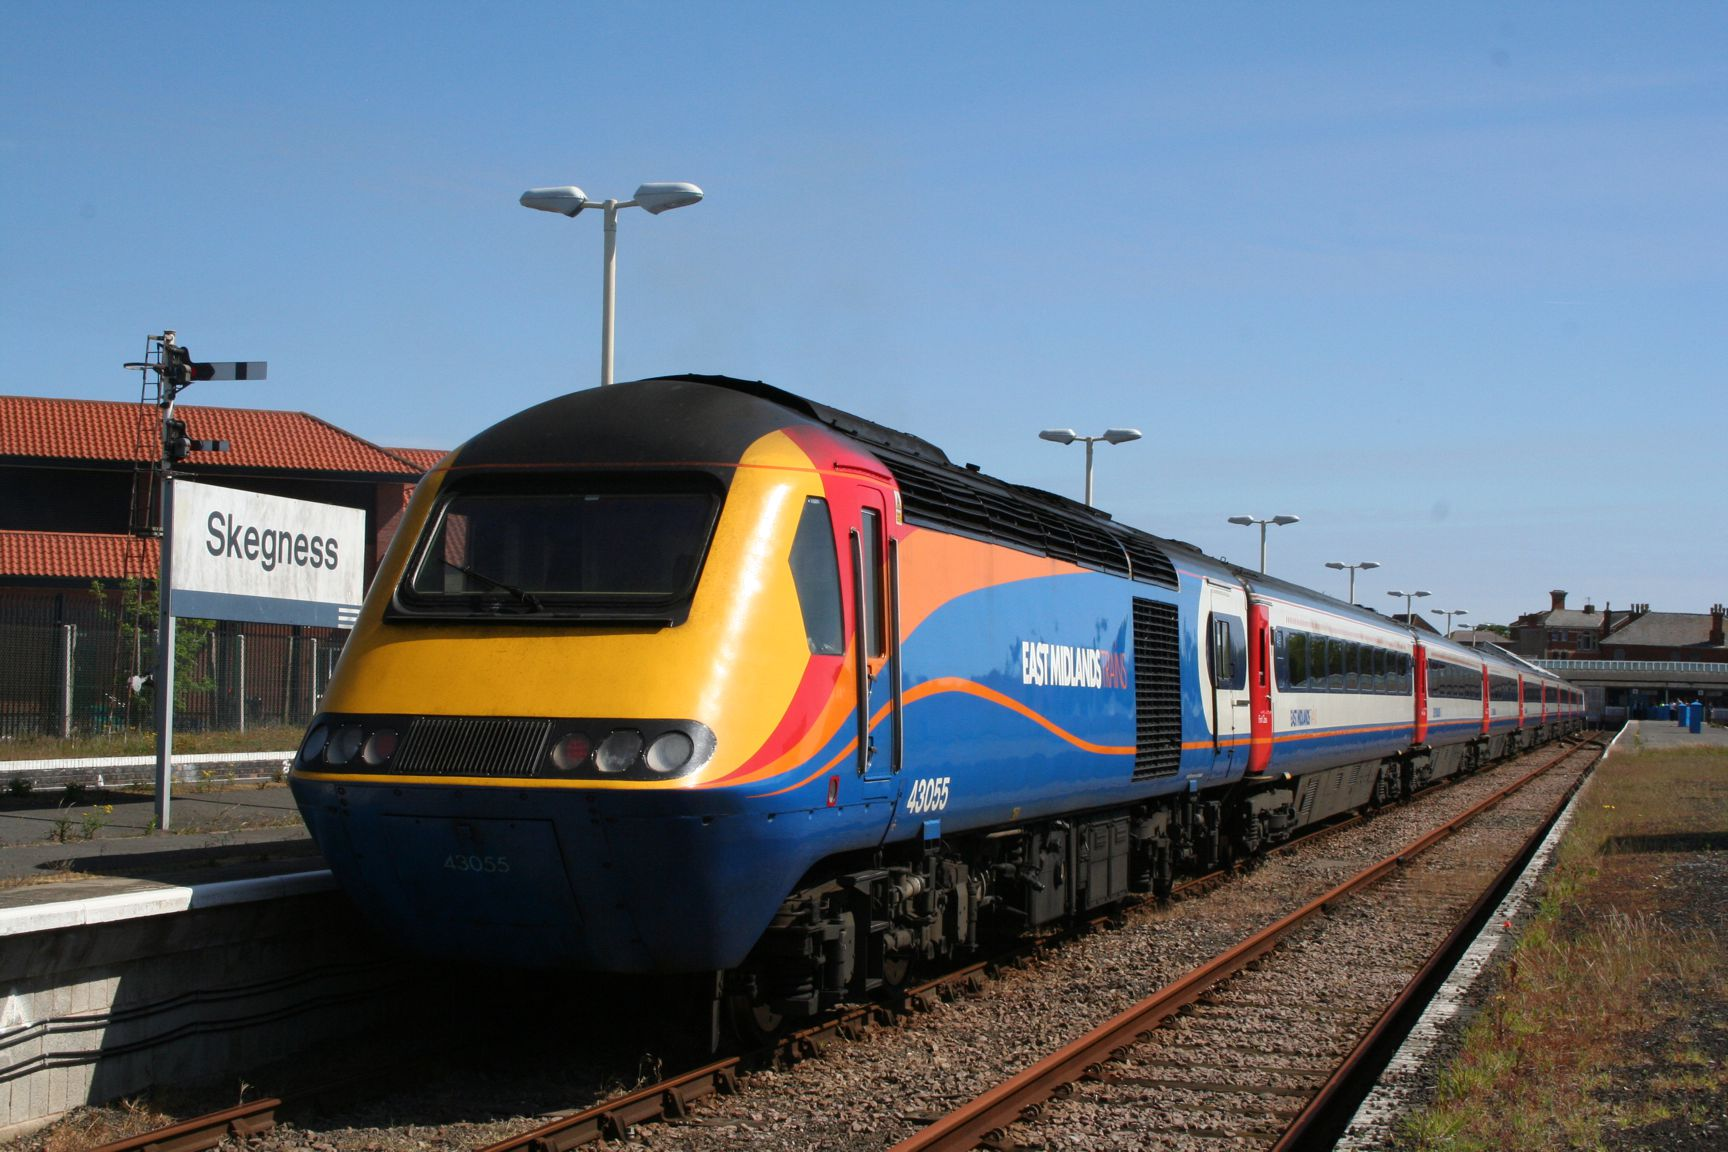 East Midlands Trains 125 Group